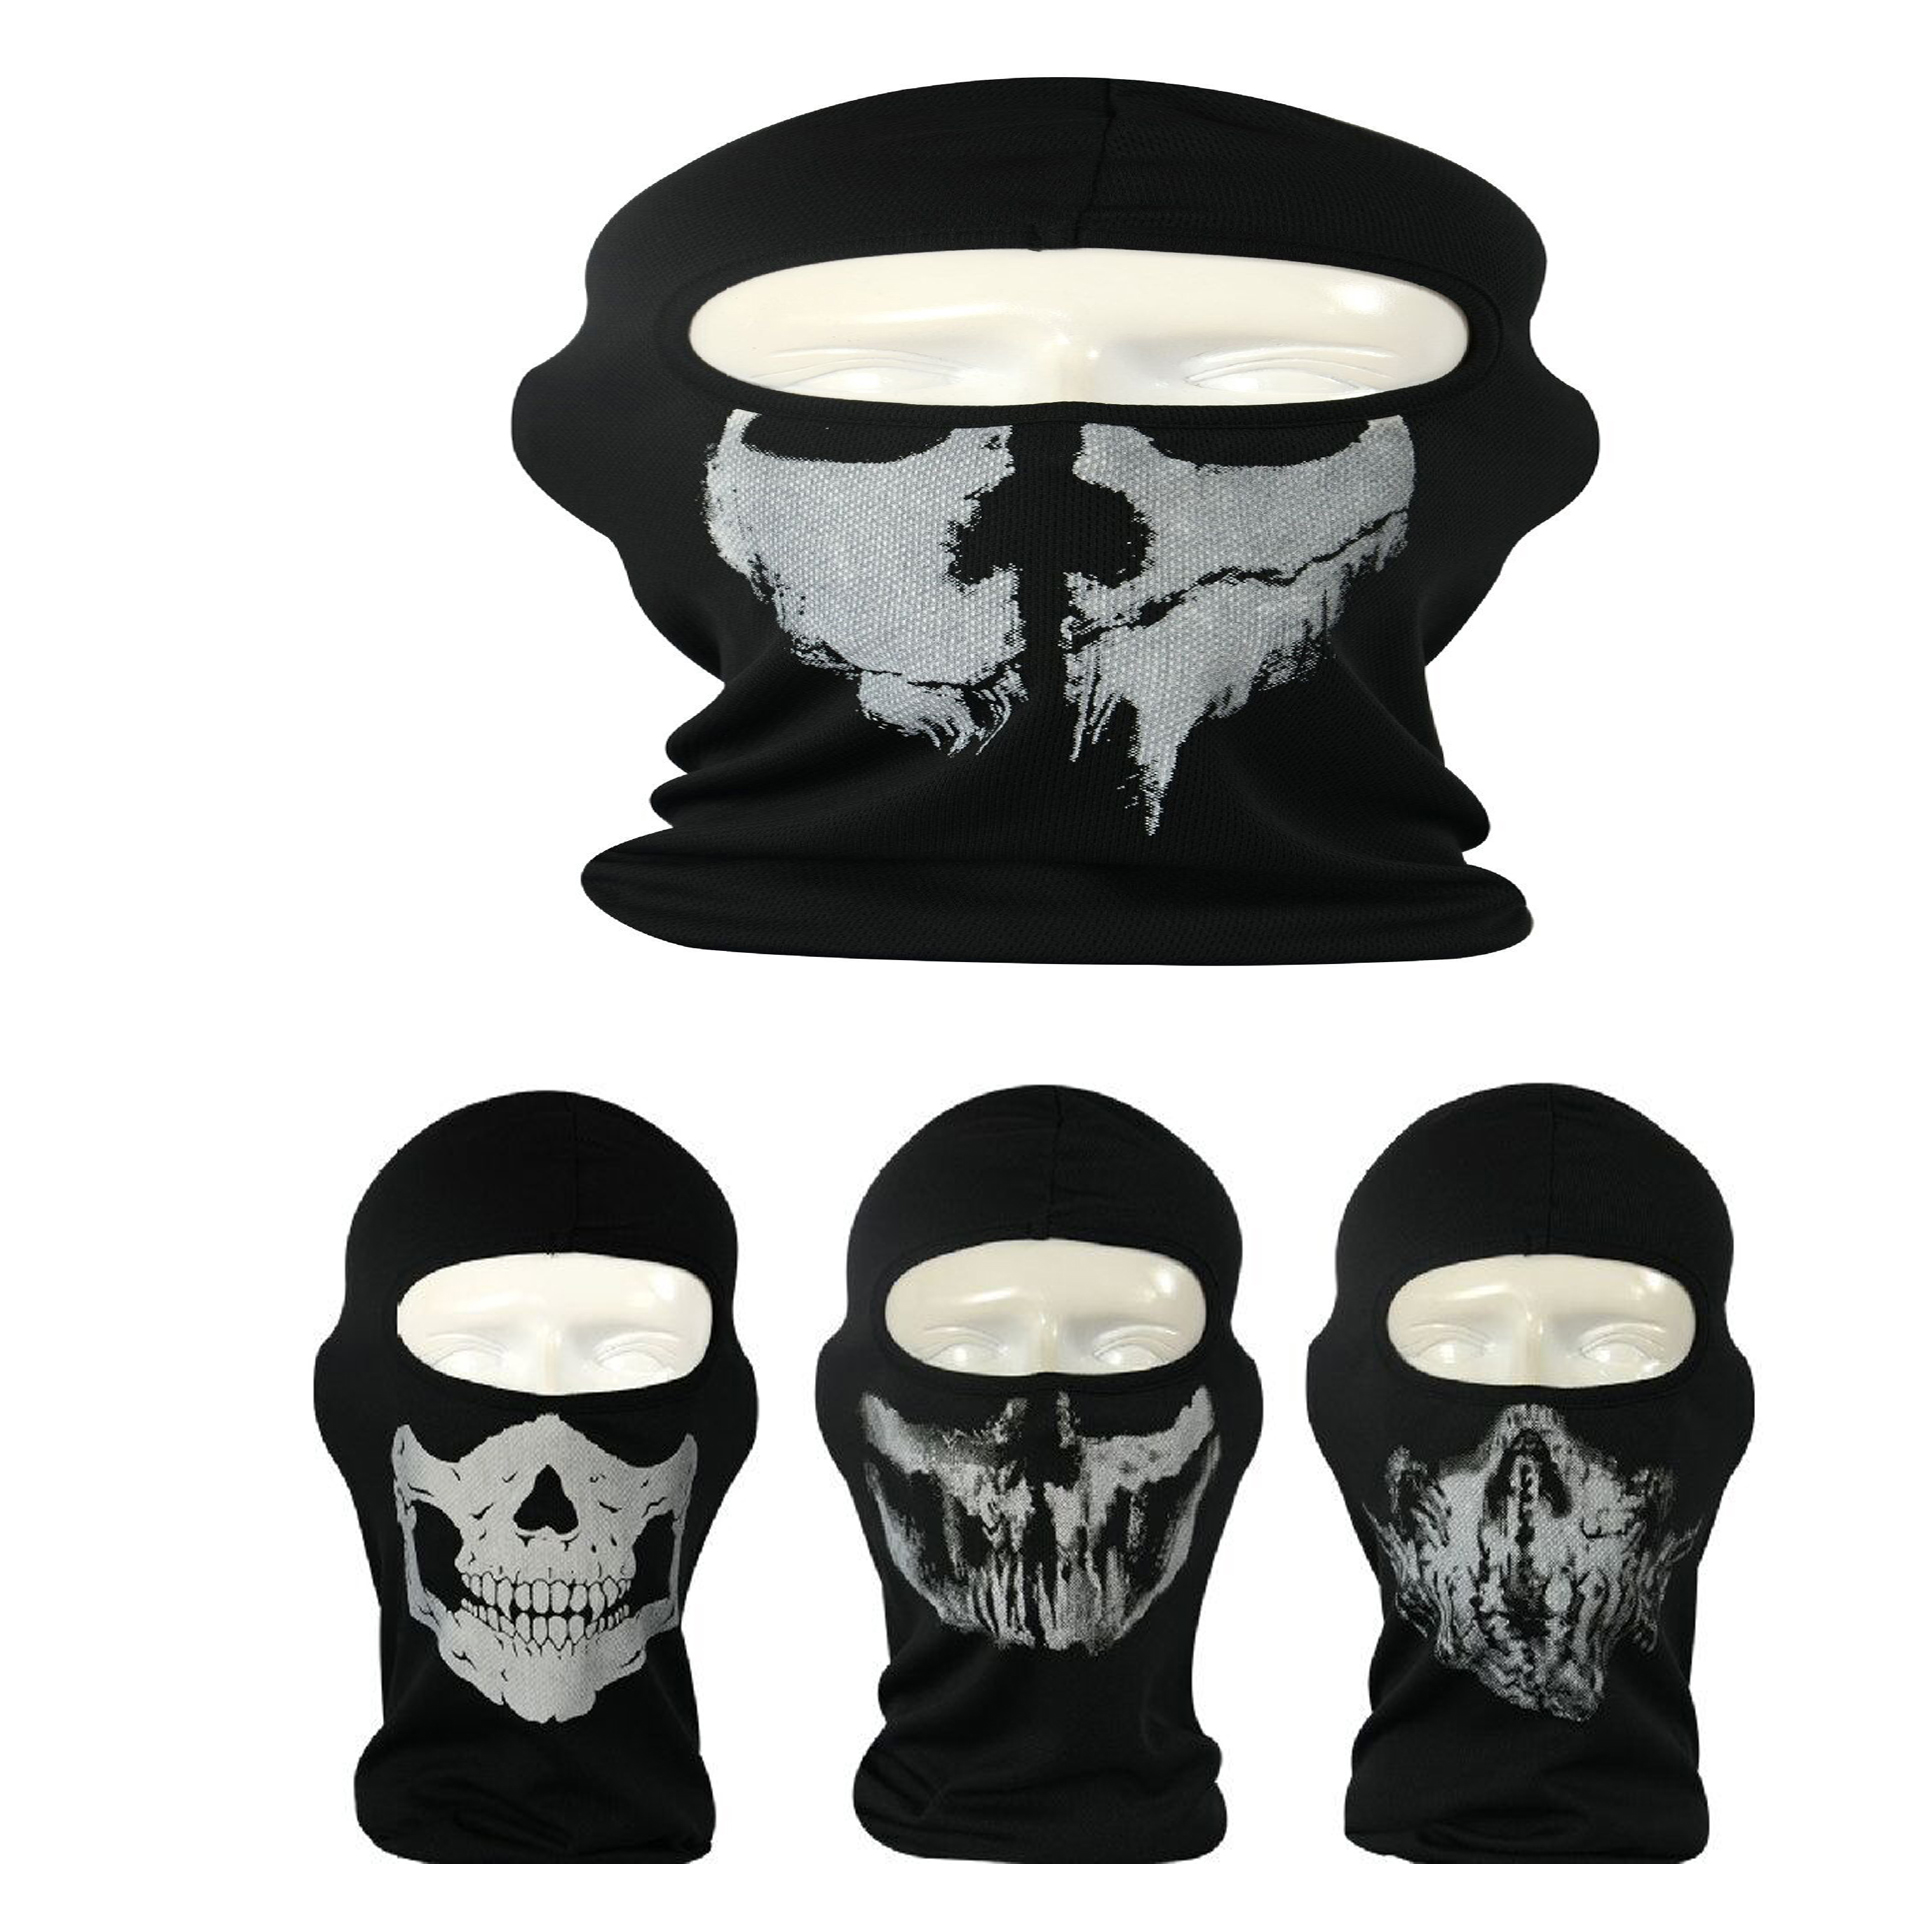 2016 New Cycling Motorcycle skull mask Ride skeleton Stretch Hap Balaclava Hood Cosplay Costume Full Face Masks Free Shipping(China (Mainland))